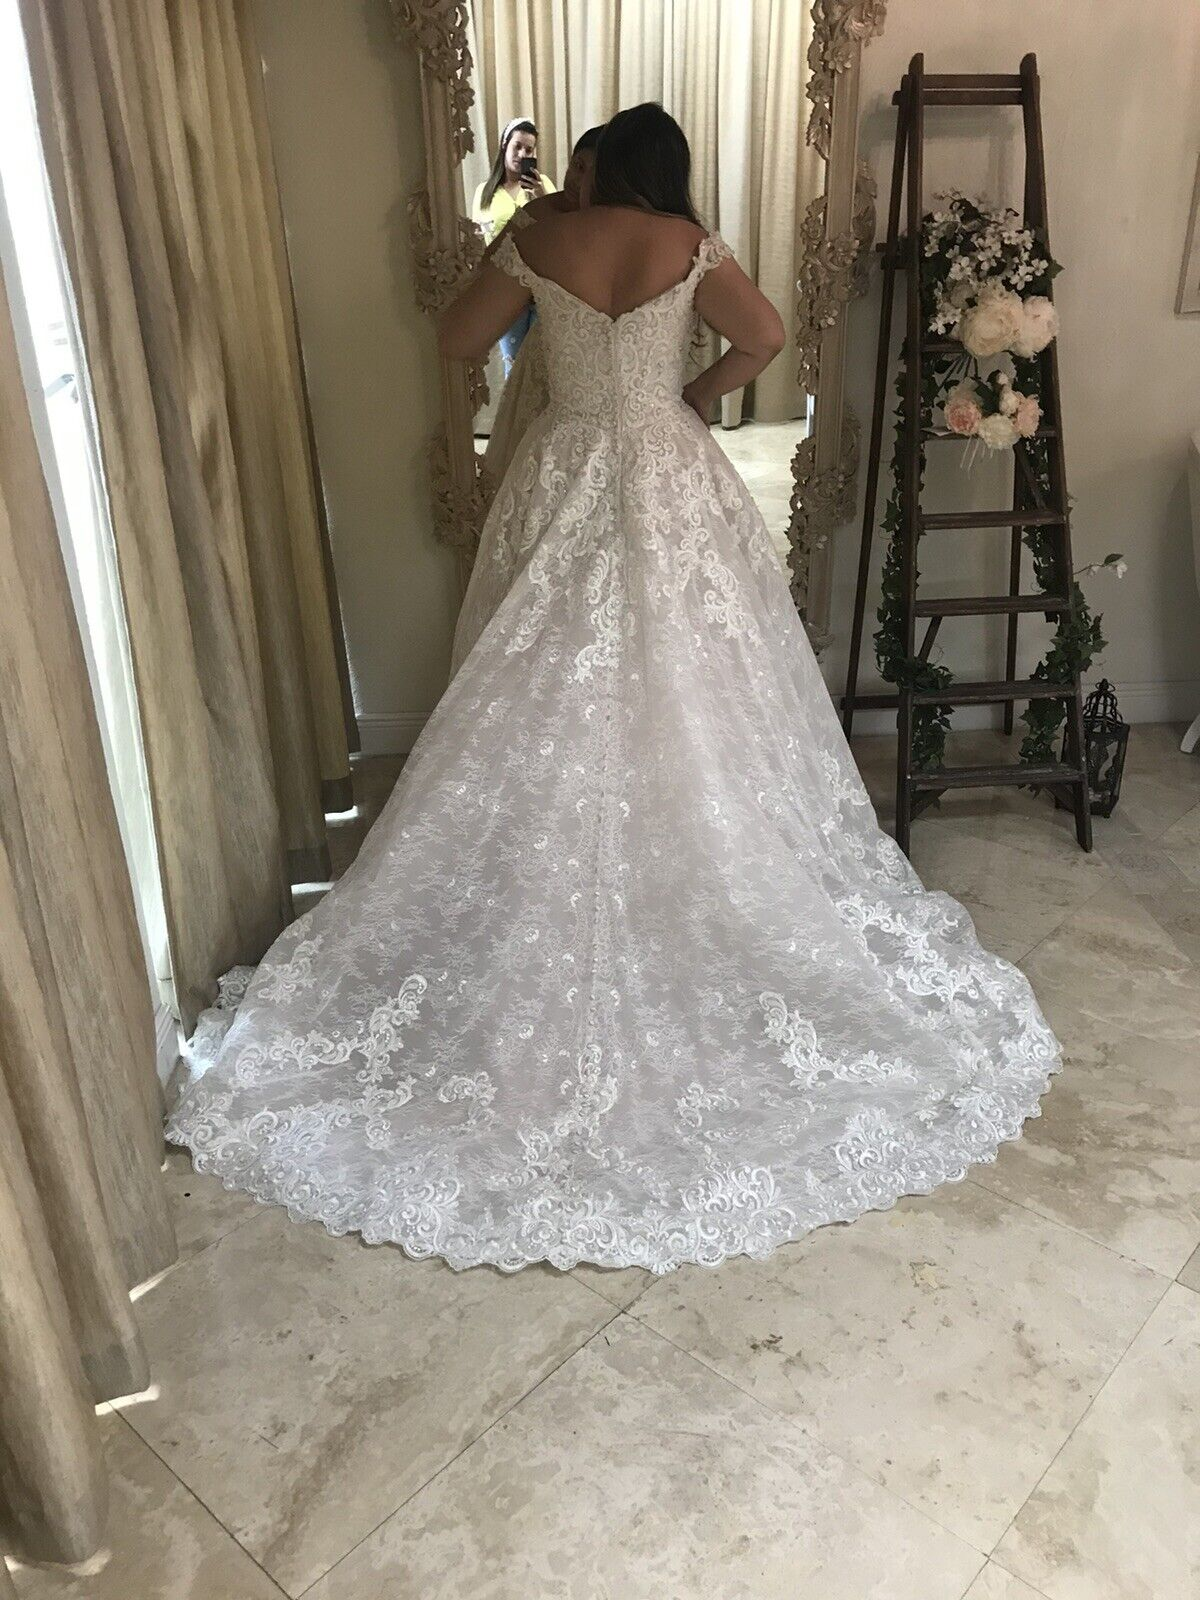 Wedding Dress Allure Couture C461 Size 10 - image 3